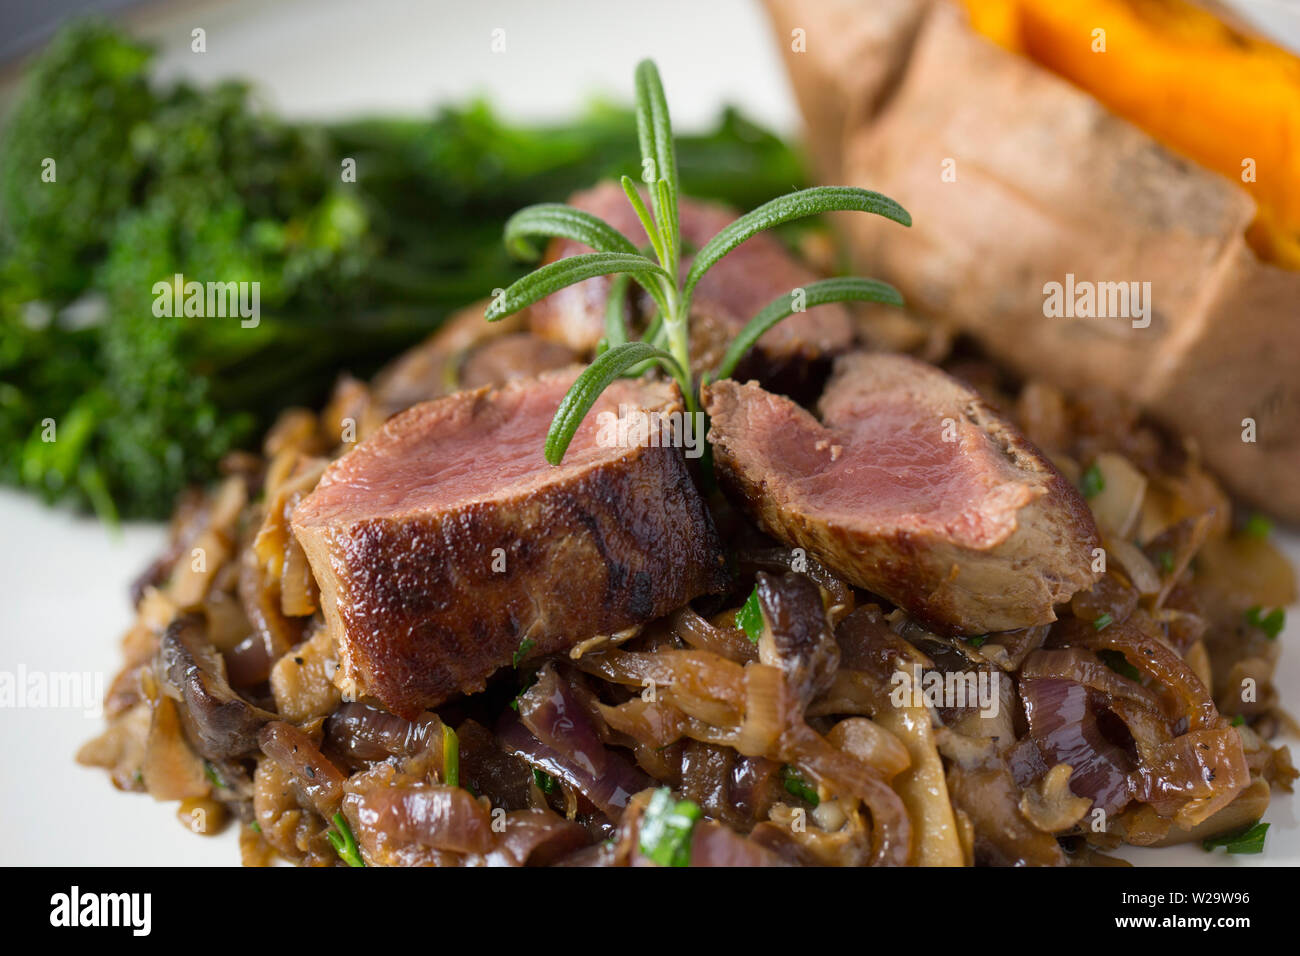 A homemade venison dish comprising of roe deer saddle fillet, or backstrap, that has been flash fried so it is still rare and sliced. It is served wit - Stock Image